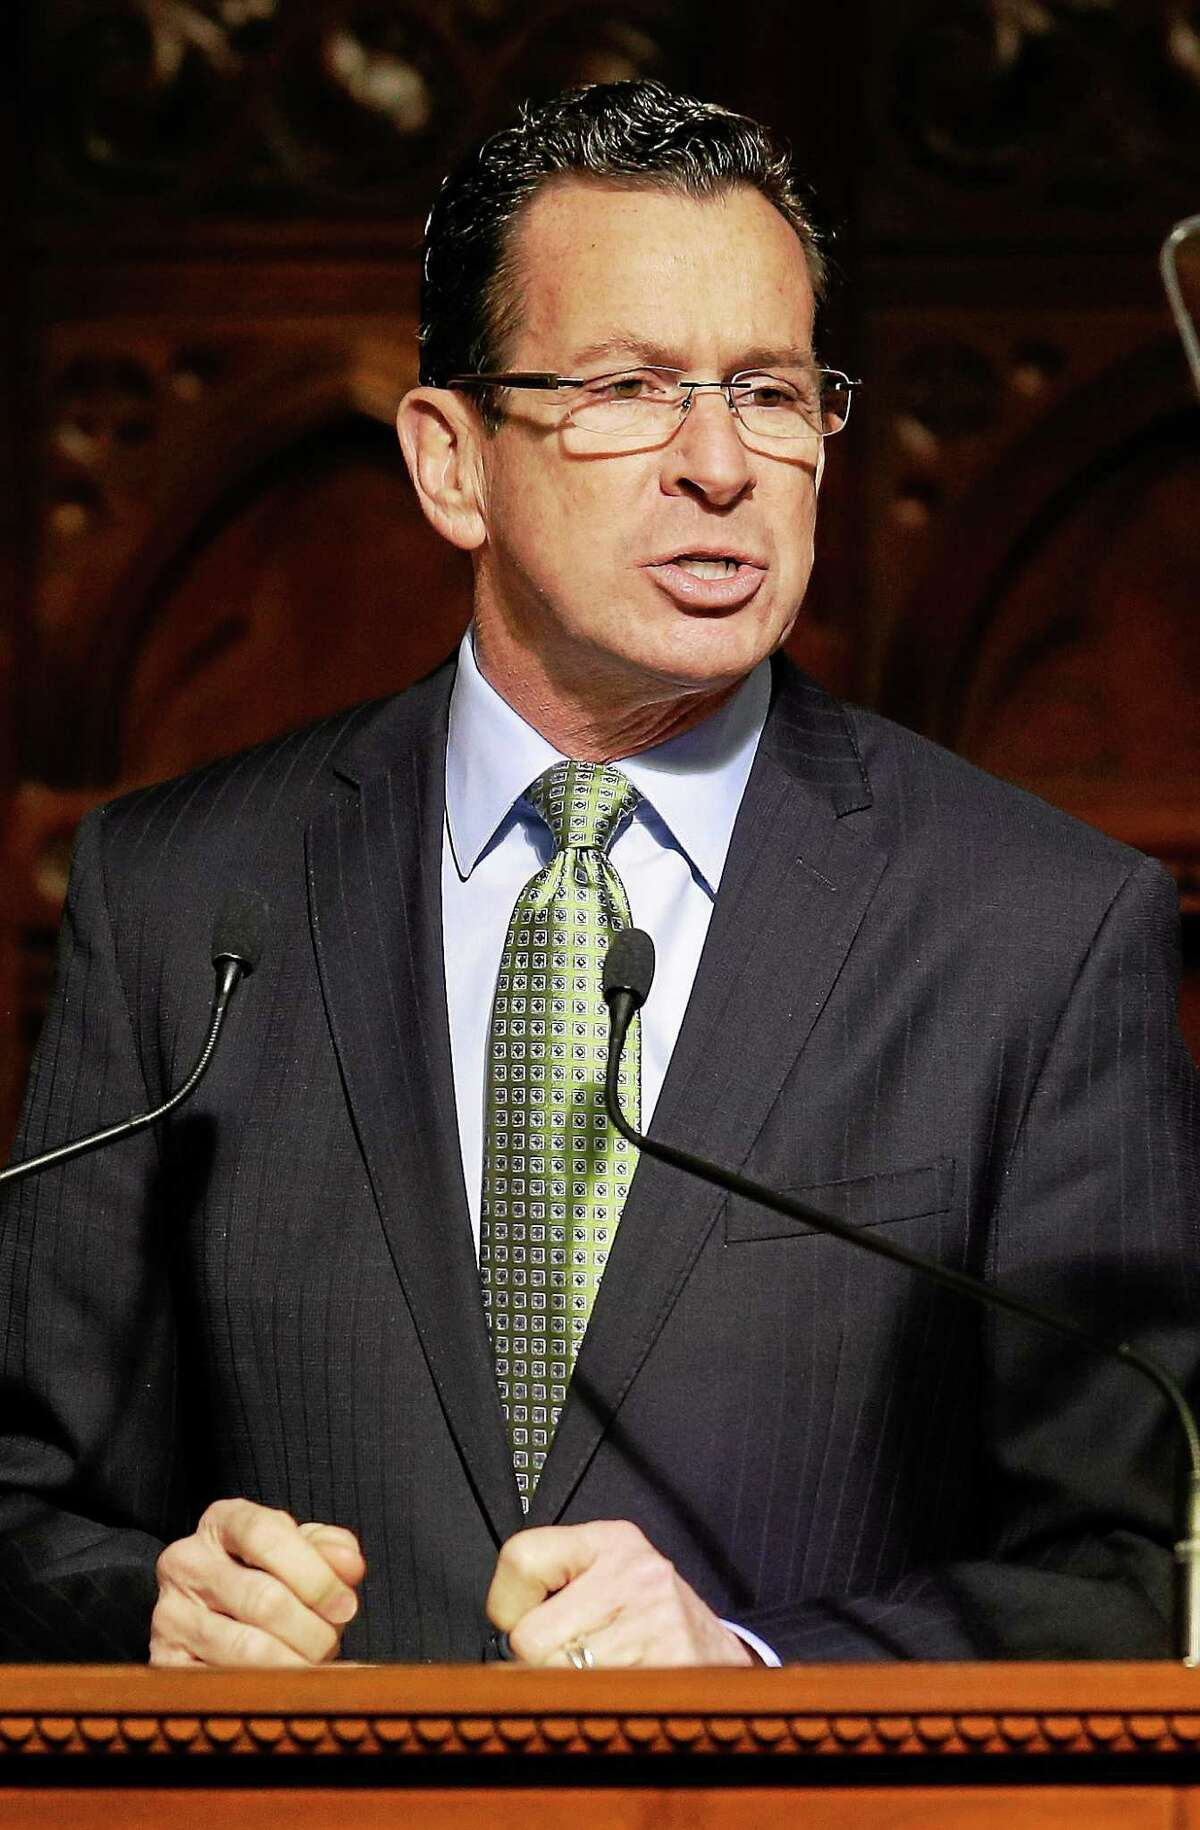 File - Connecticut Gov. Dannel P. Malloy gestures with his fists as he emphasizes a point during his 2014 State of the State address.